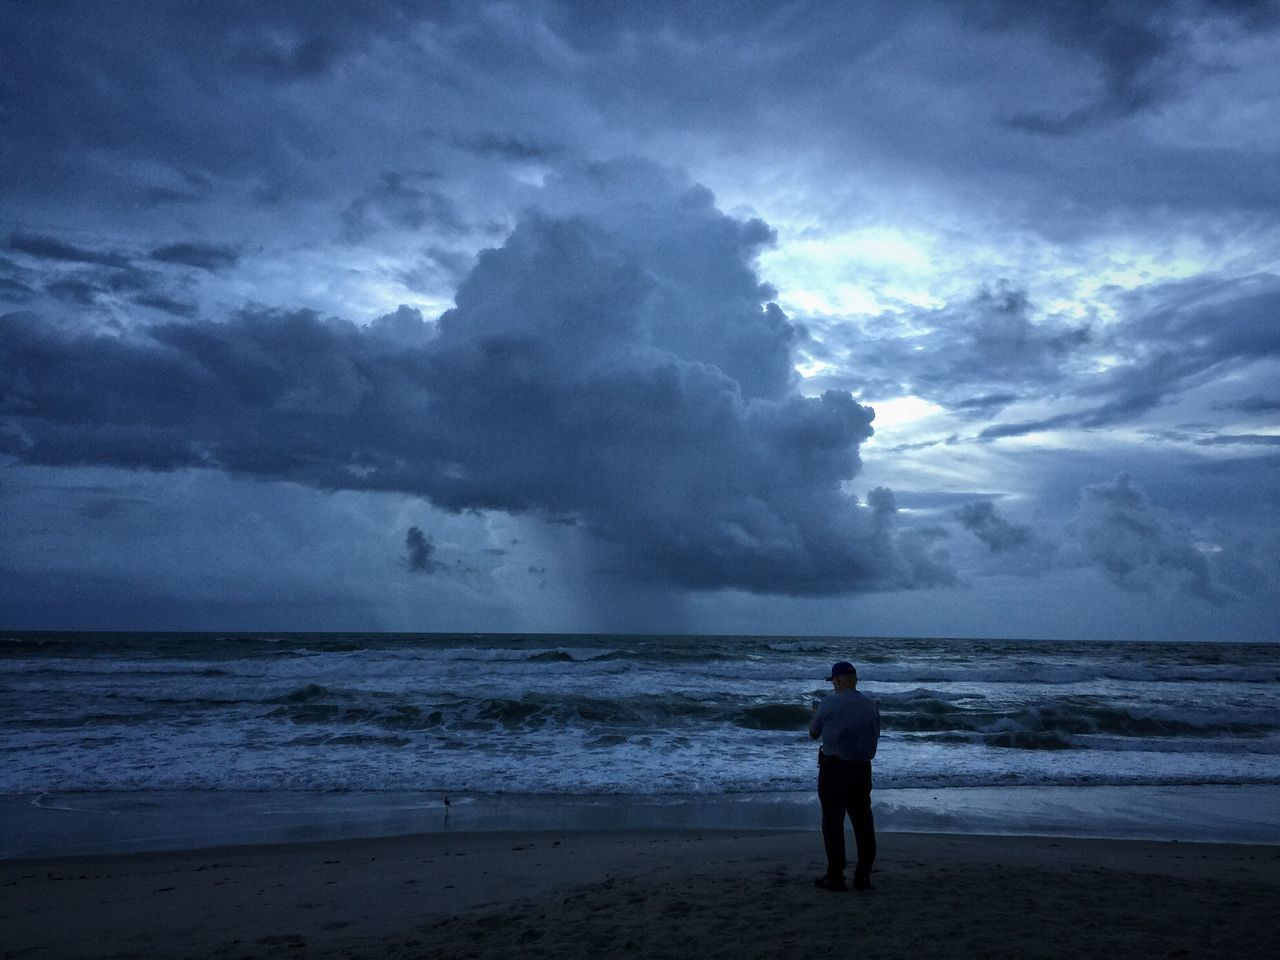 Morning before Hurricane Matthew Hurricane Weather Storm Clouds Melbourne Beach, FL Hurricane Matthew 2016 Horizon Over Water Cloud - Sky Coastline Oceanscape Sunrise And Clouds Cloudy Rain Clouds